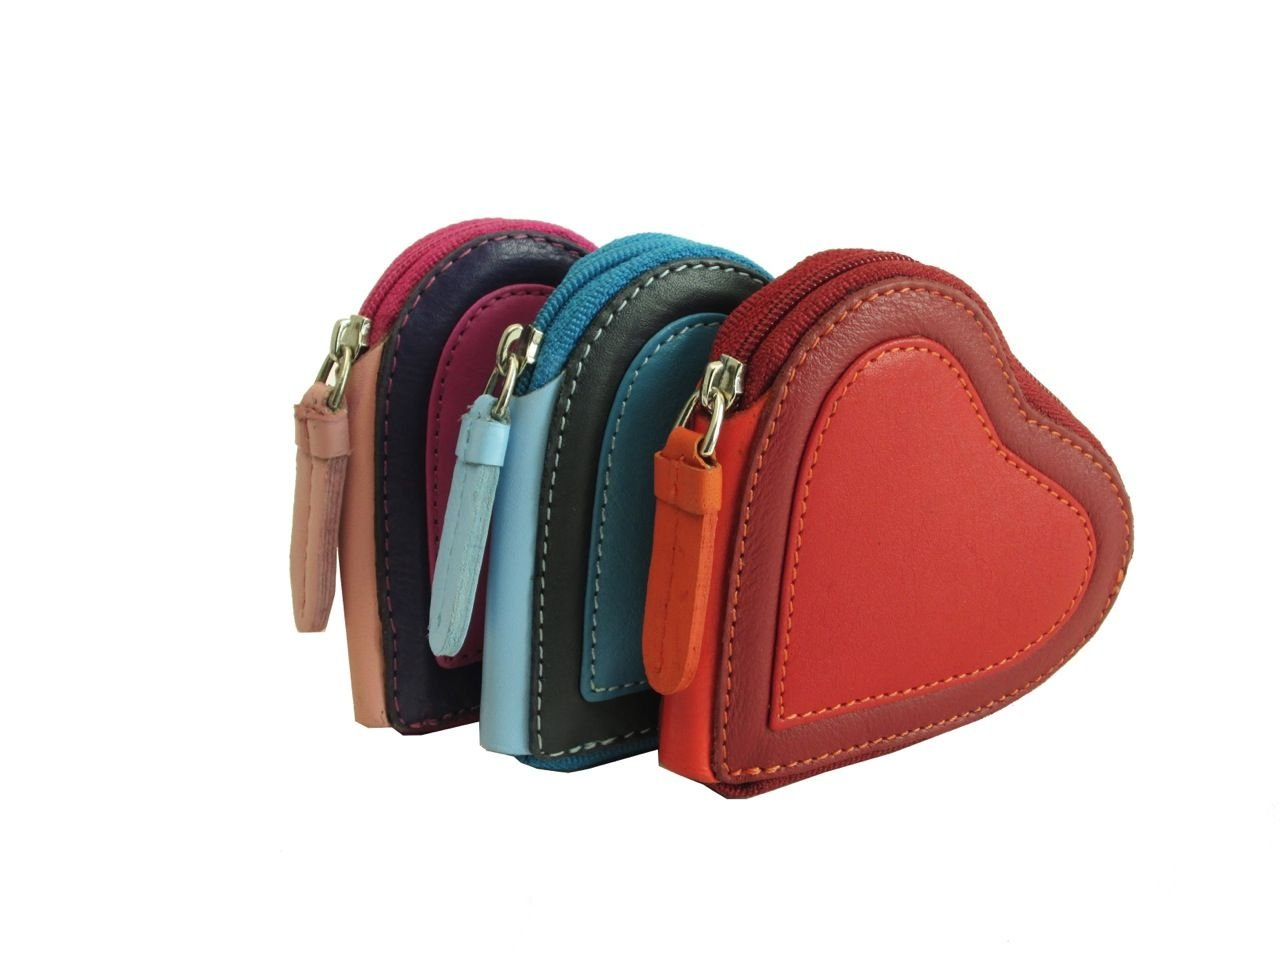 Visconti Capri RB59 Multi Colored Heart Shaped Ladies/ Girls Leather Coin Purse Key Wallet With Key Chain (Red)